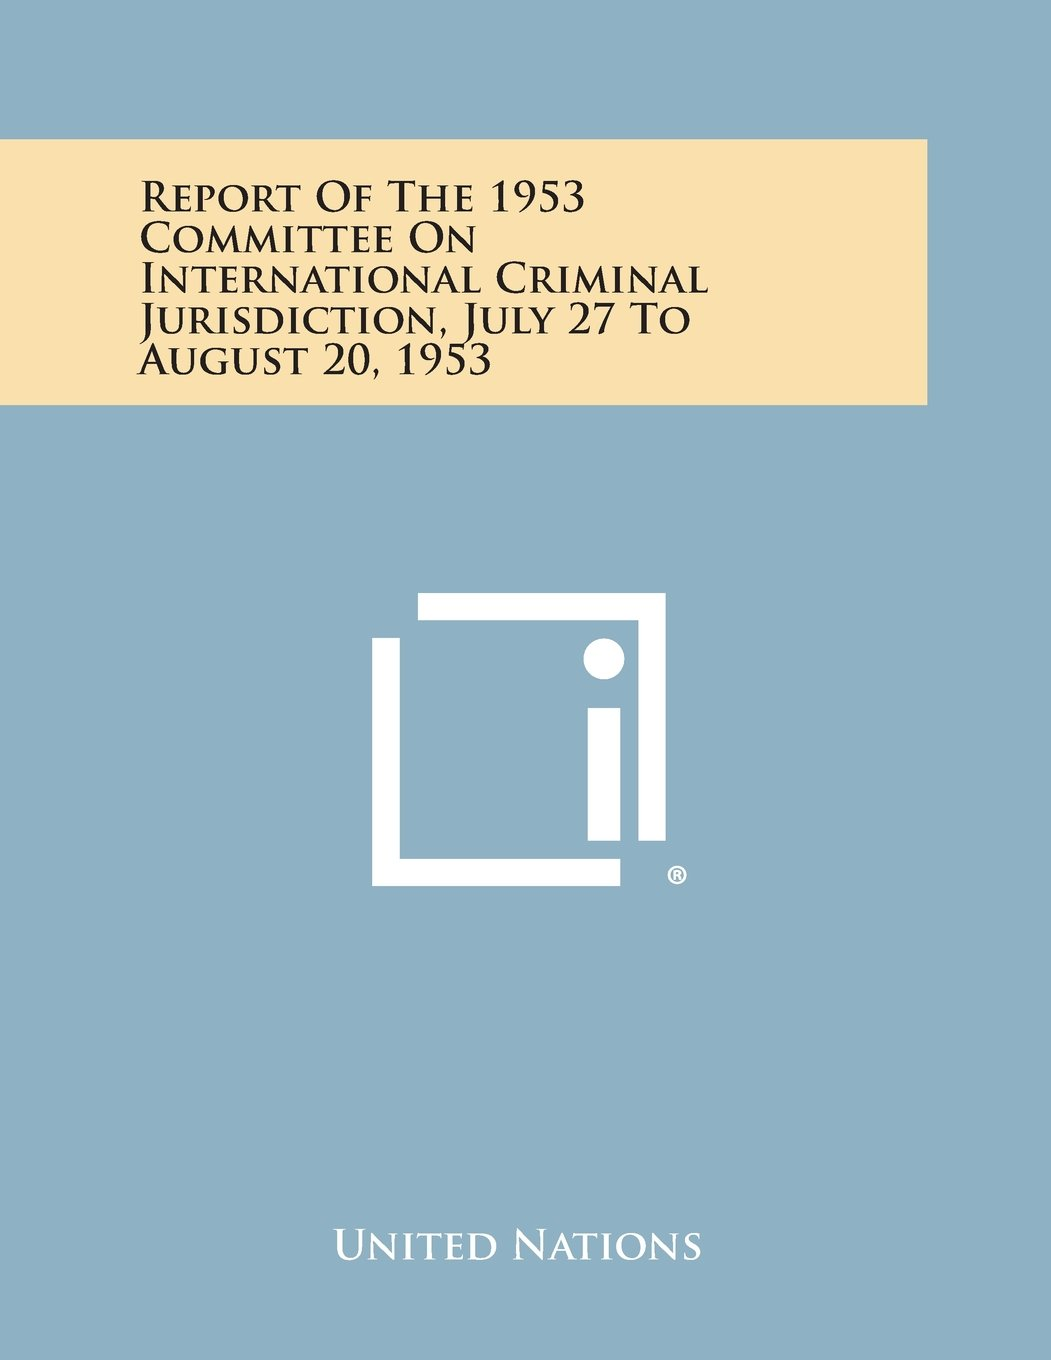 Download Report of the 1953 Committee on International Criminal Jurisdiction, July 27 to August 20, 1953 ebook